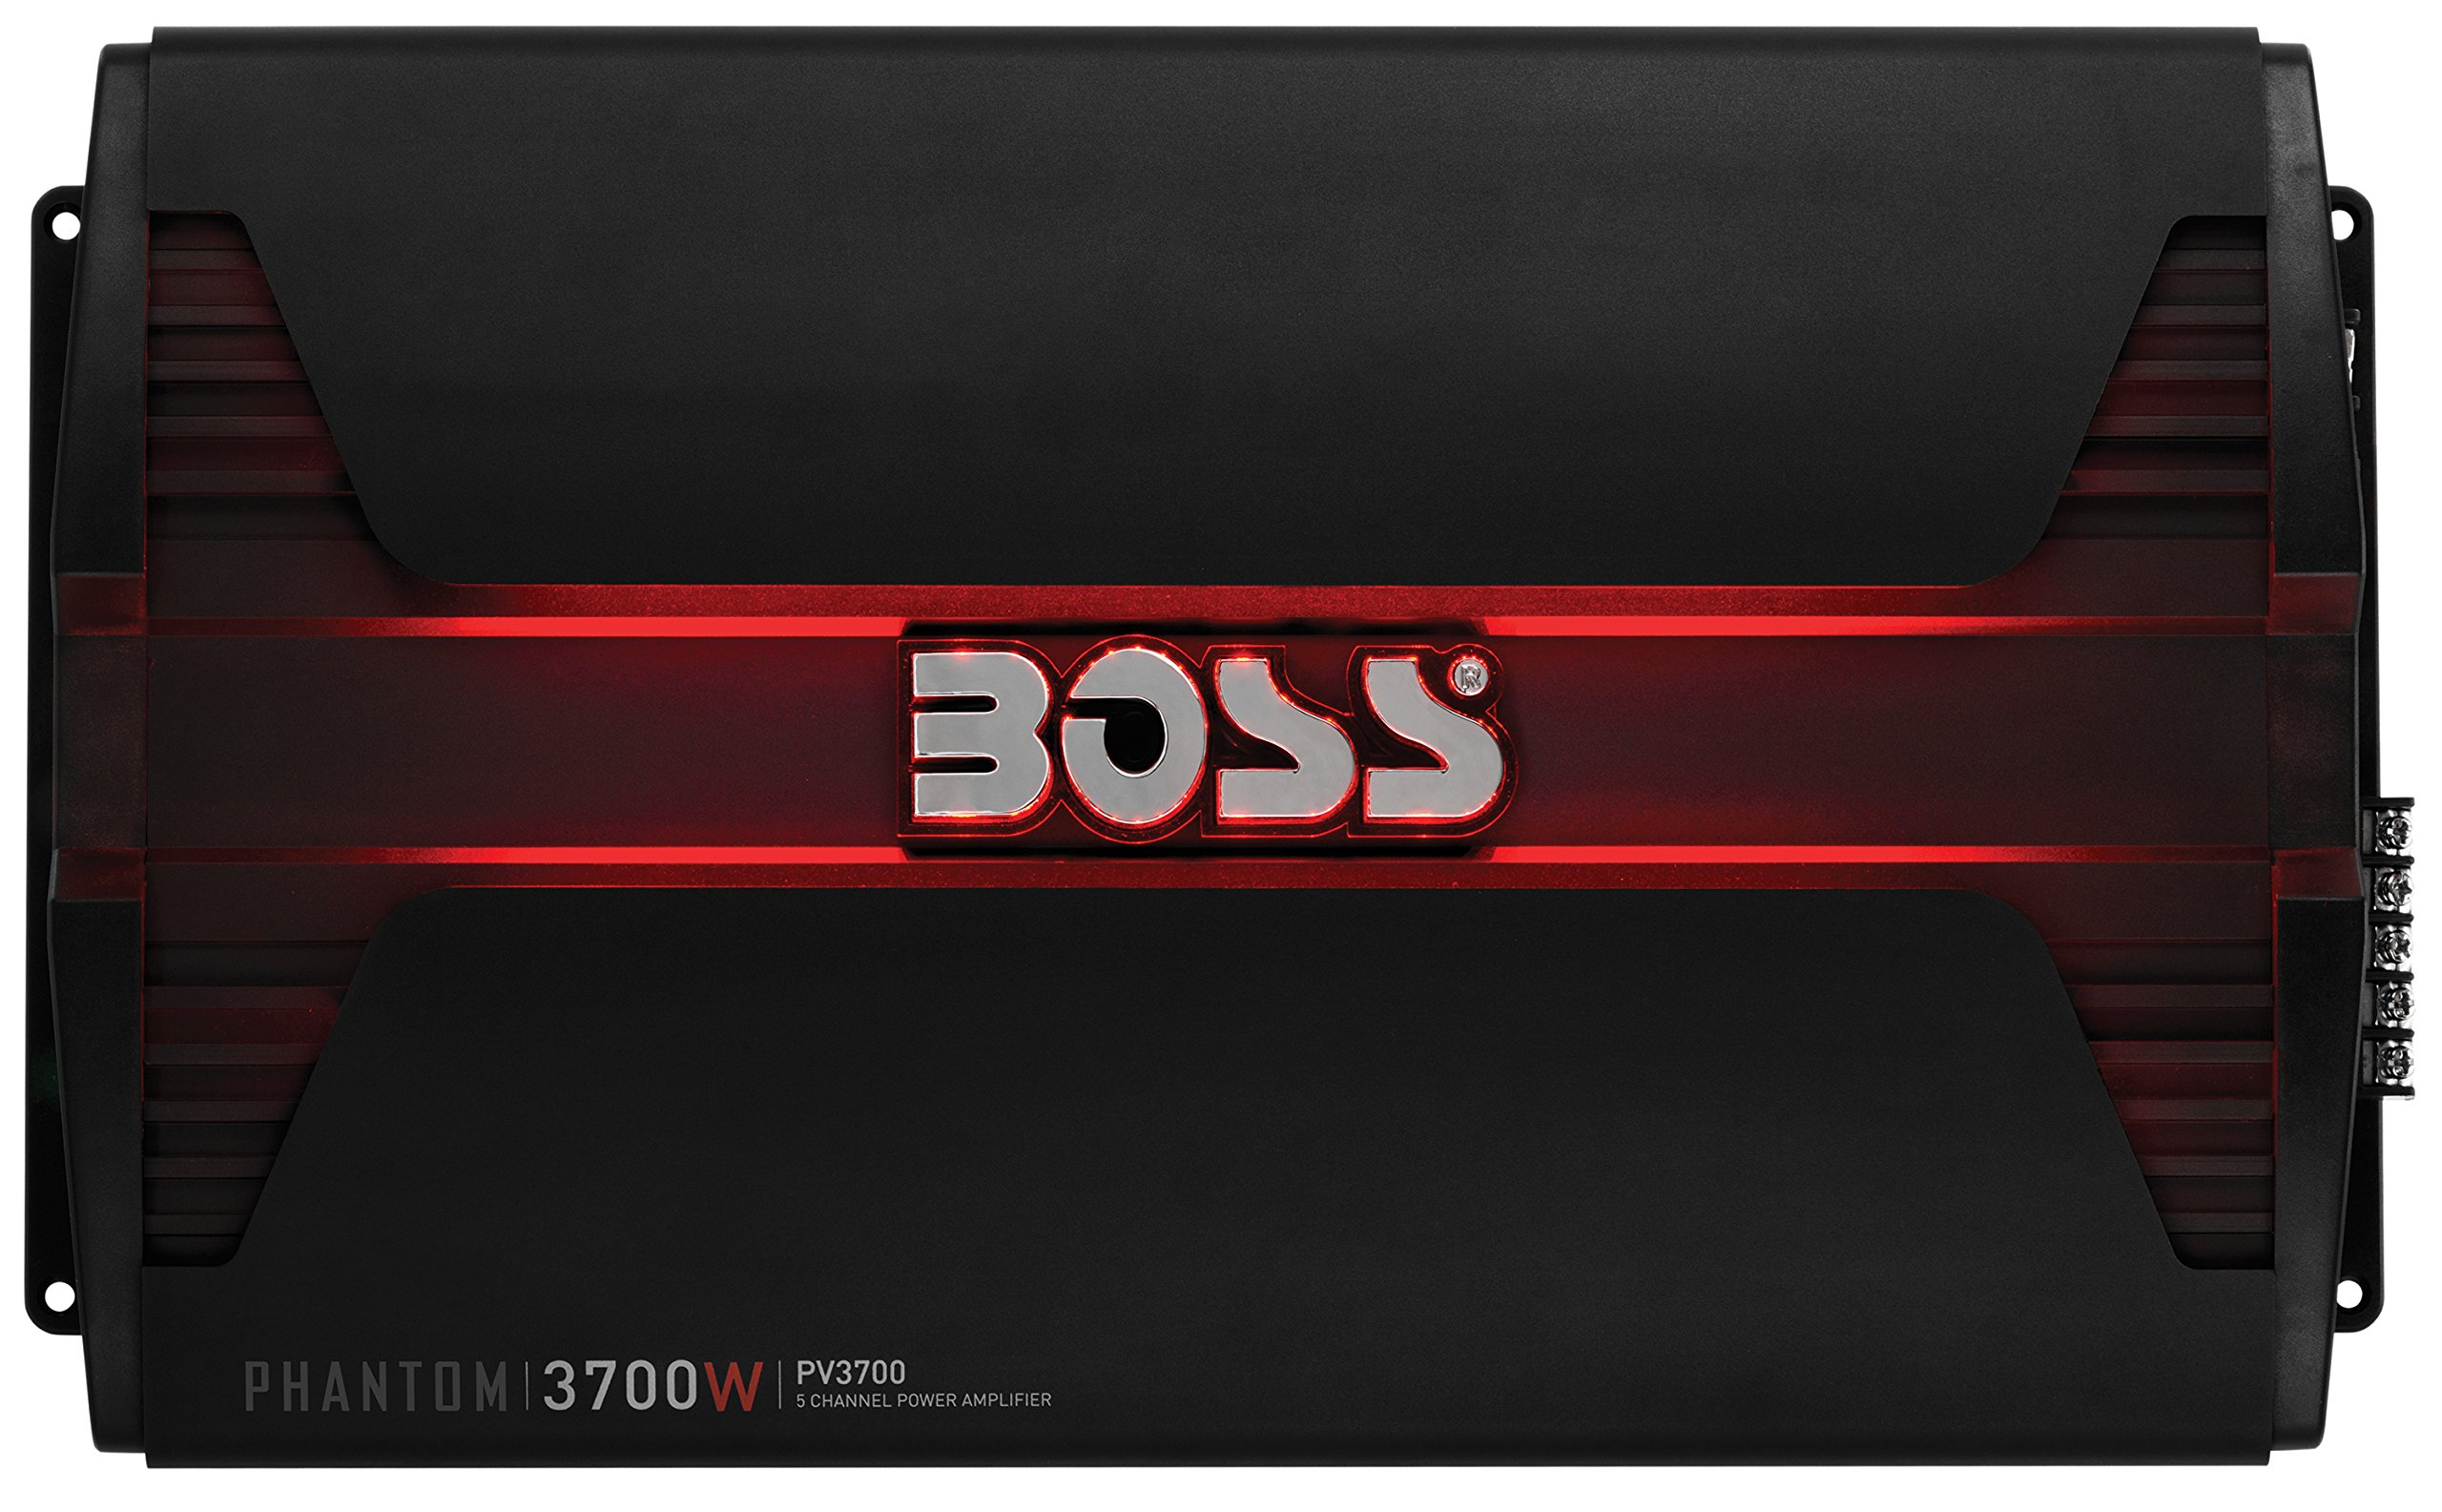 BOSS Audio Systems PV3700 Phantom 3700 Watt, 2 4 Ohm Stable Class AB, 5 Channel, Full Range, Bridgeable, Mosfet with Remote Subwoofer Control by BOSS Audio Systems